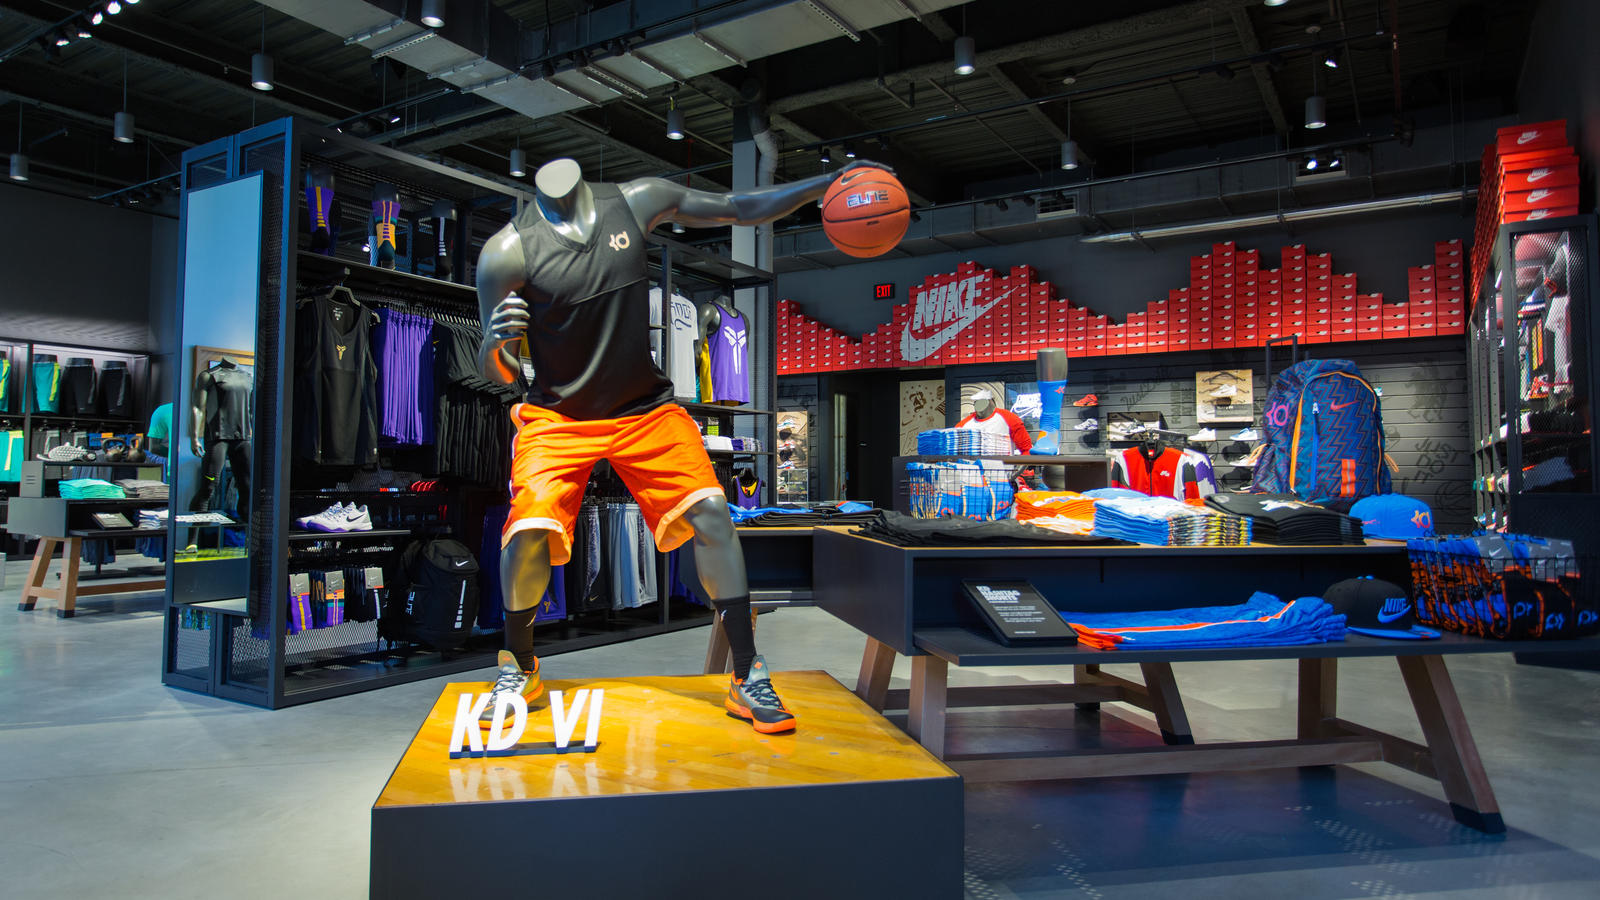 nikeboston5